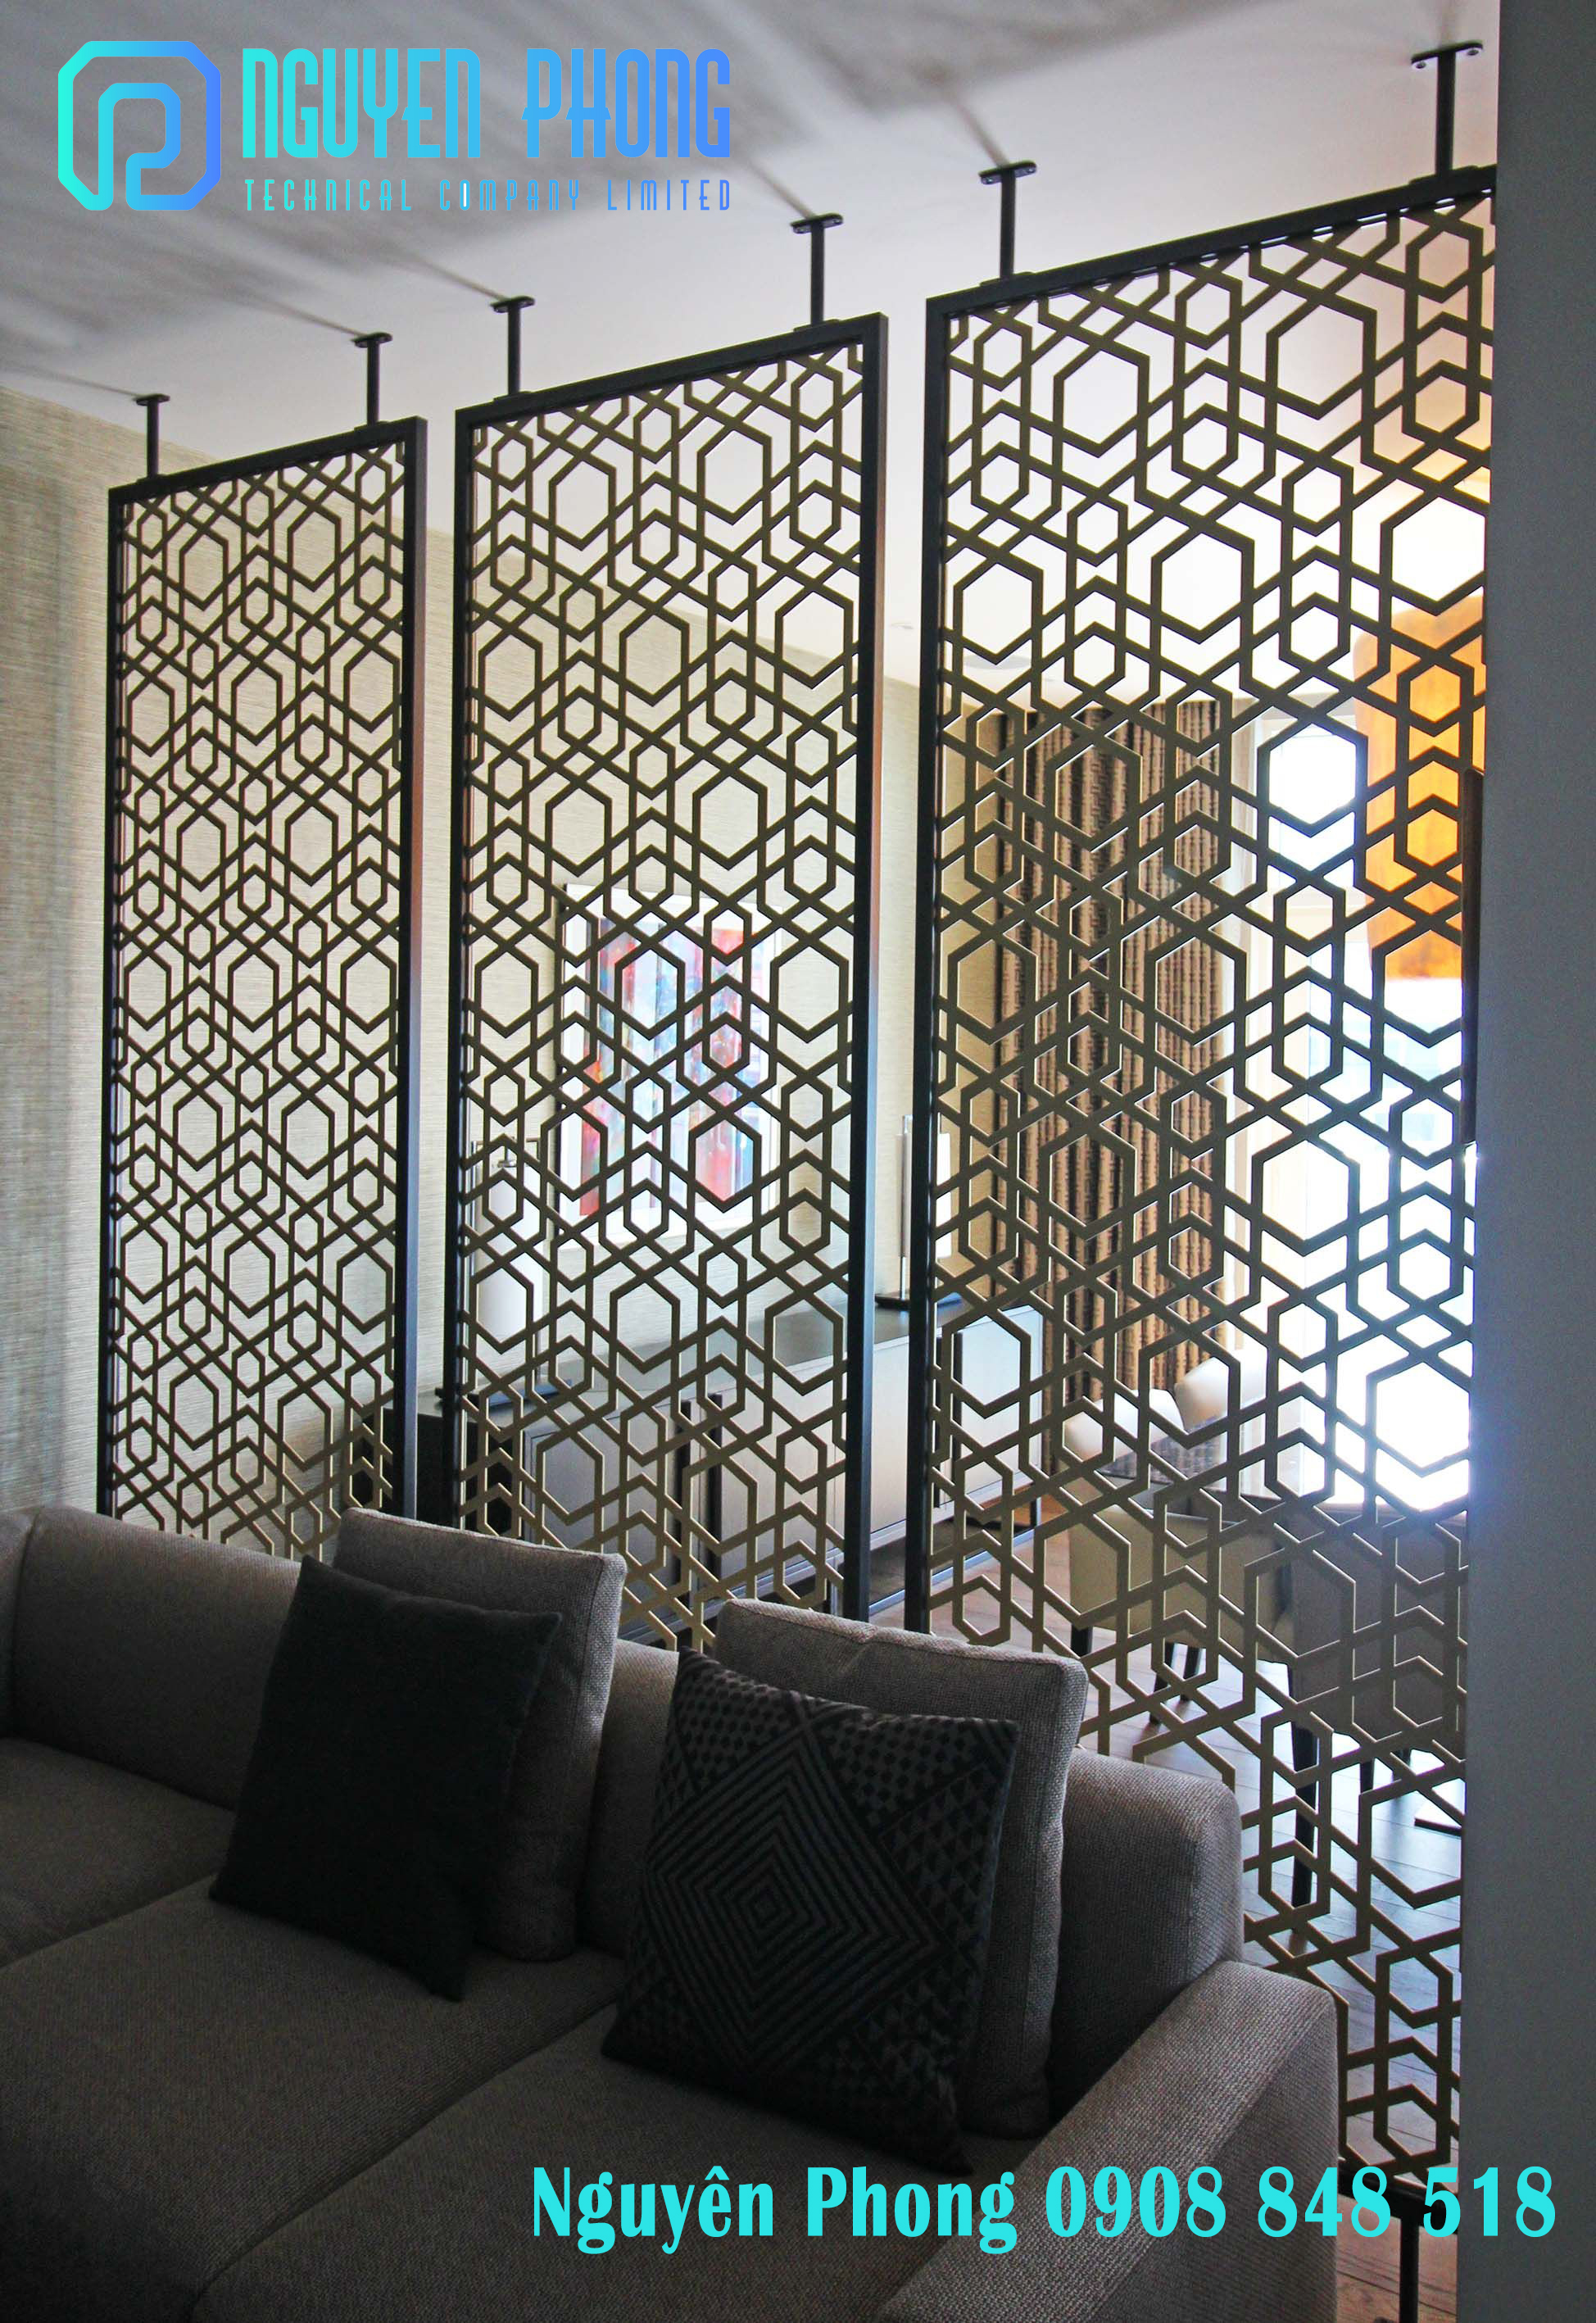 Laser Cut Framed Screens - Miles and Lincoln - Laser Cut Screens.jpg